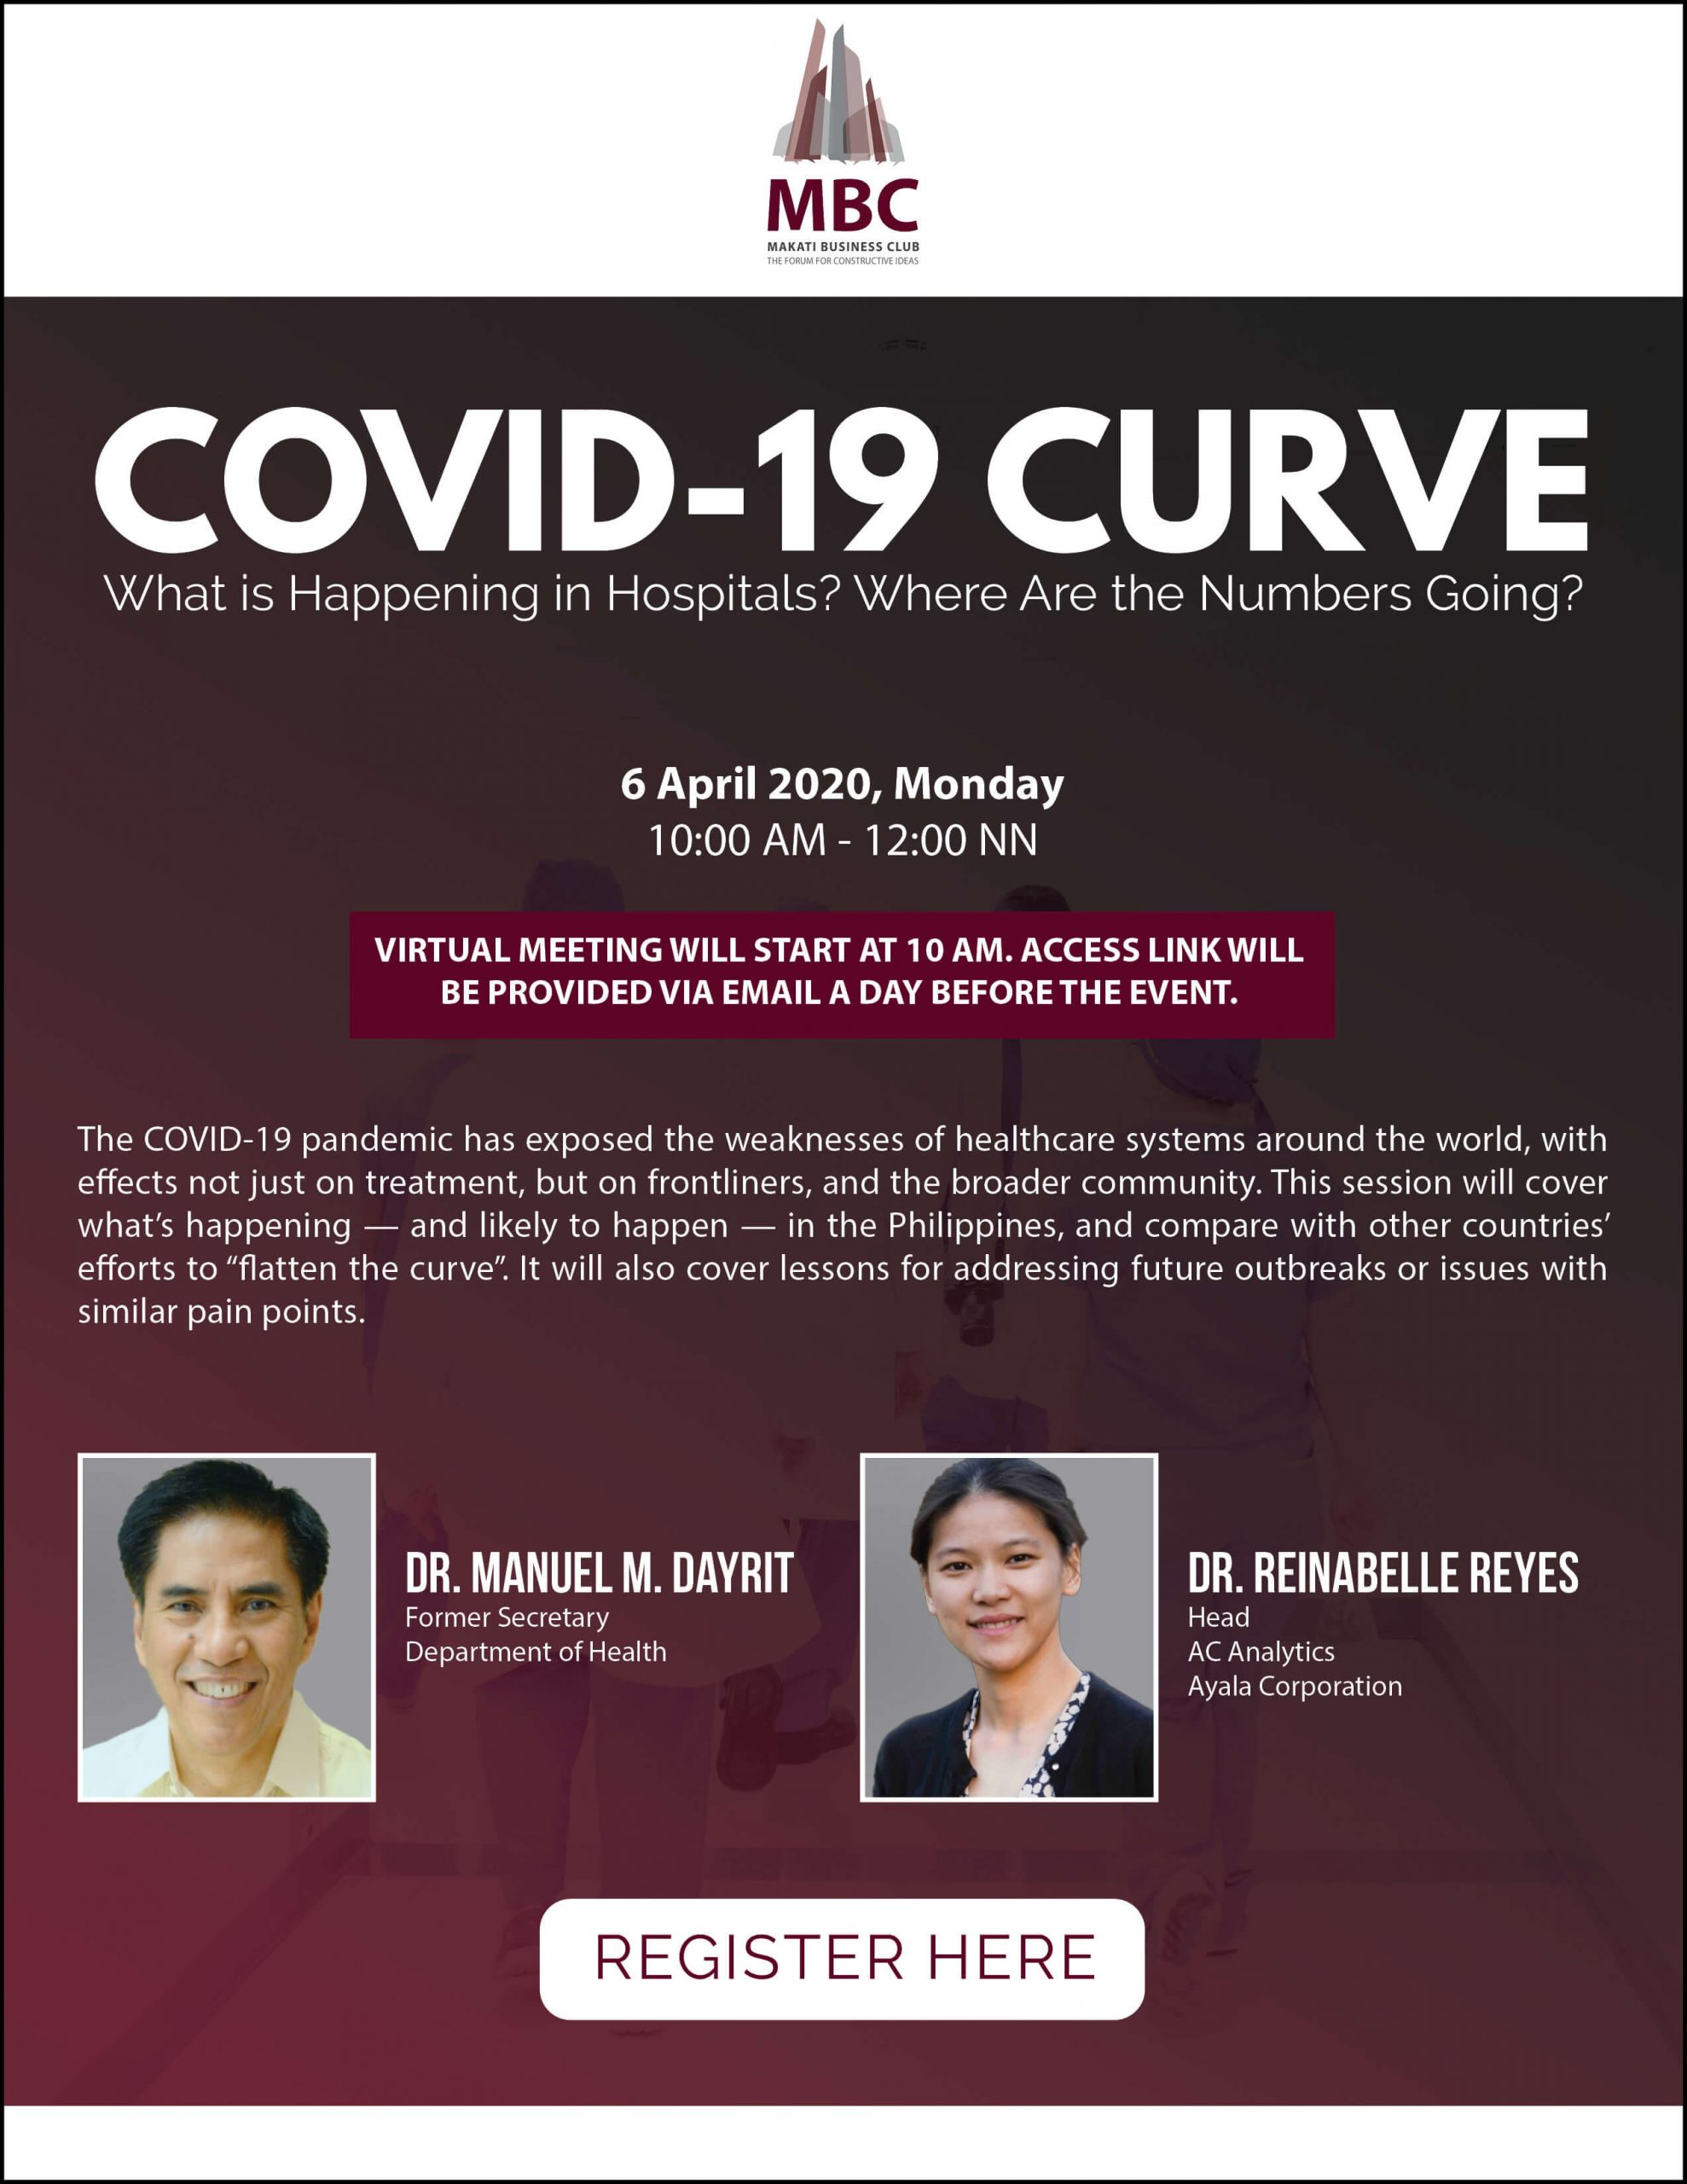 COVID-19 CURVE: What is Happening in Hospitals? Where Are the Numbers Going?